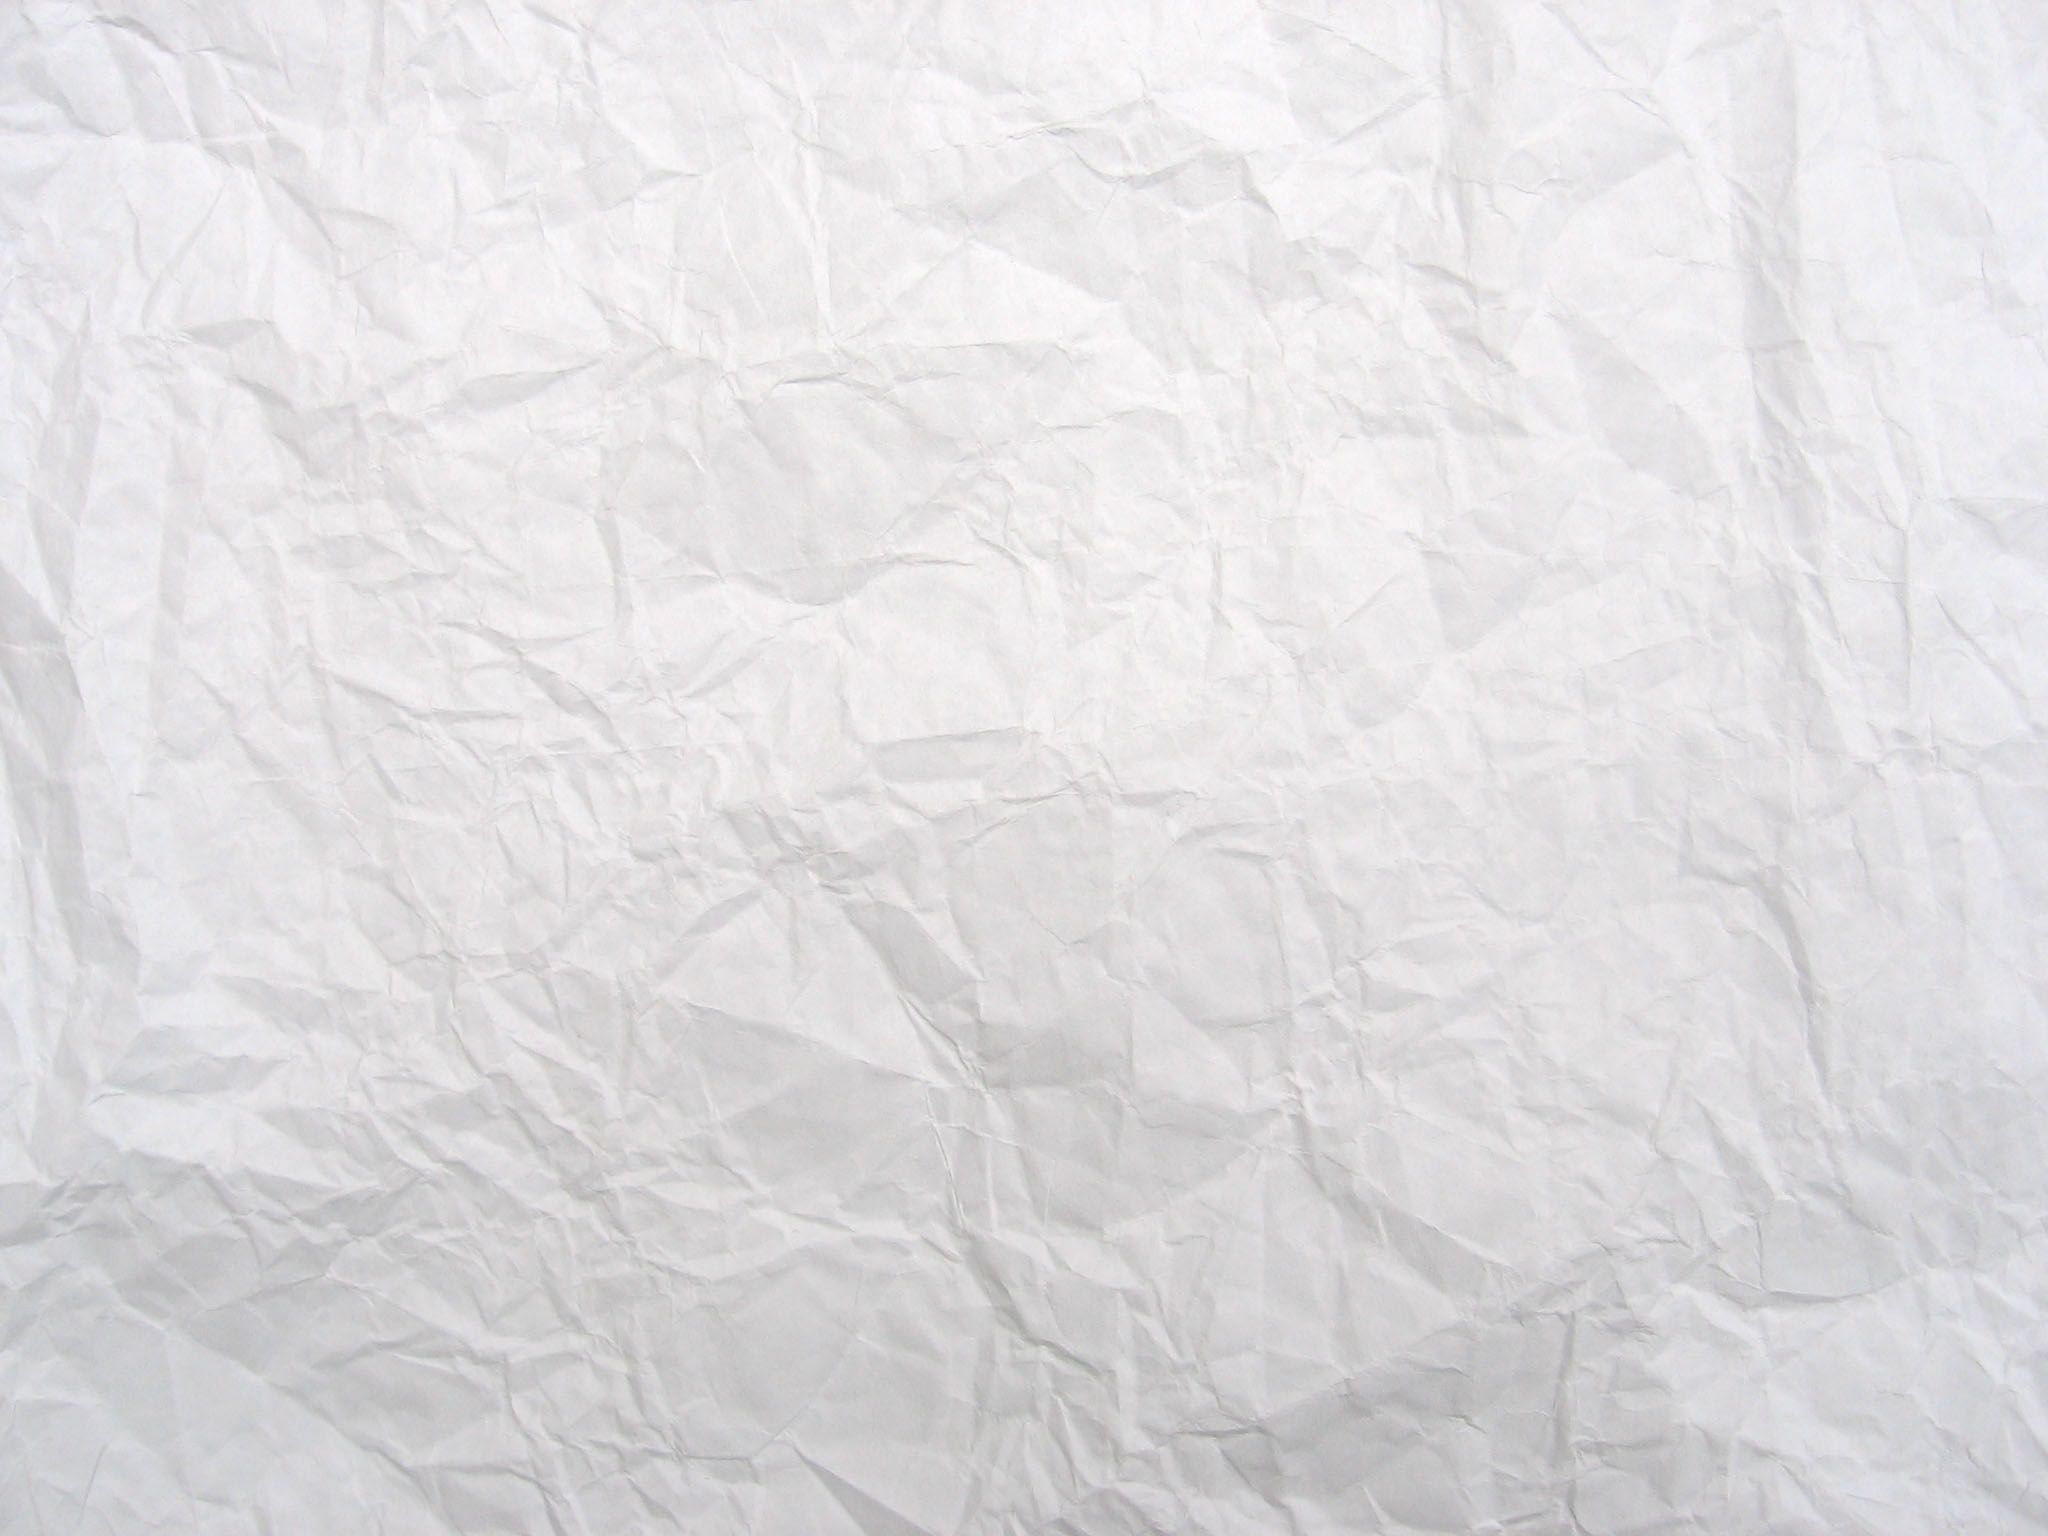 A Paper Structure, Paper Texture, The Old Rumpled Paper To Download A Photo,